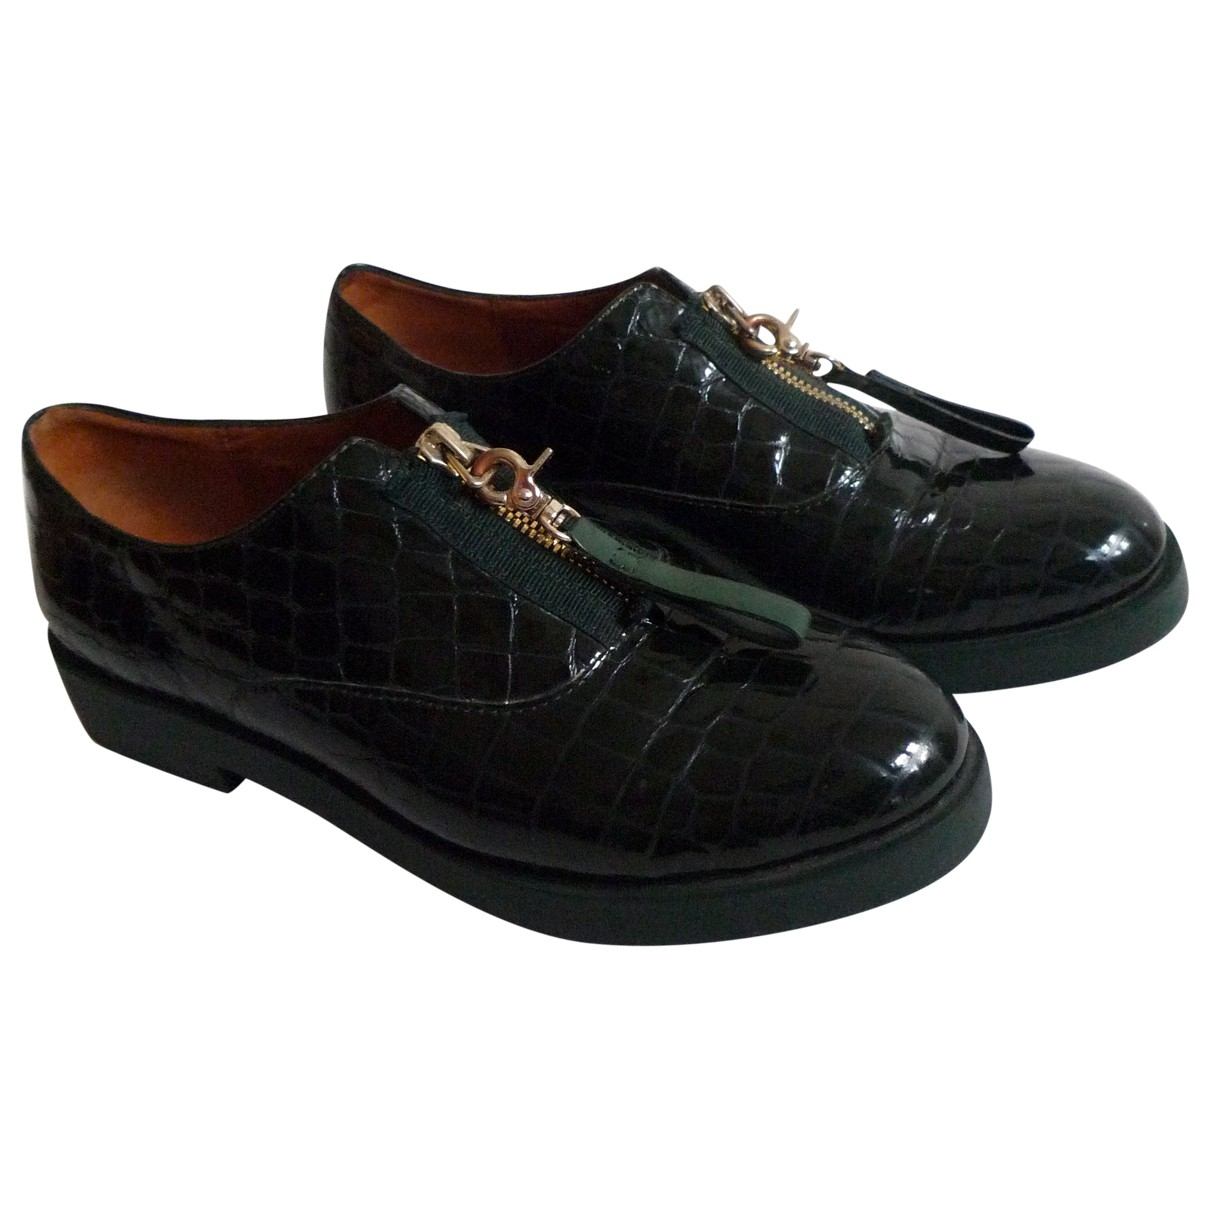 & Stories \N Green Patent leather Flats for Women 39 EU